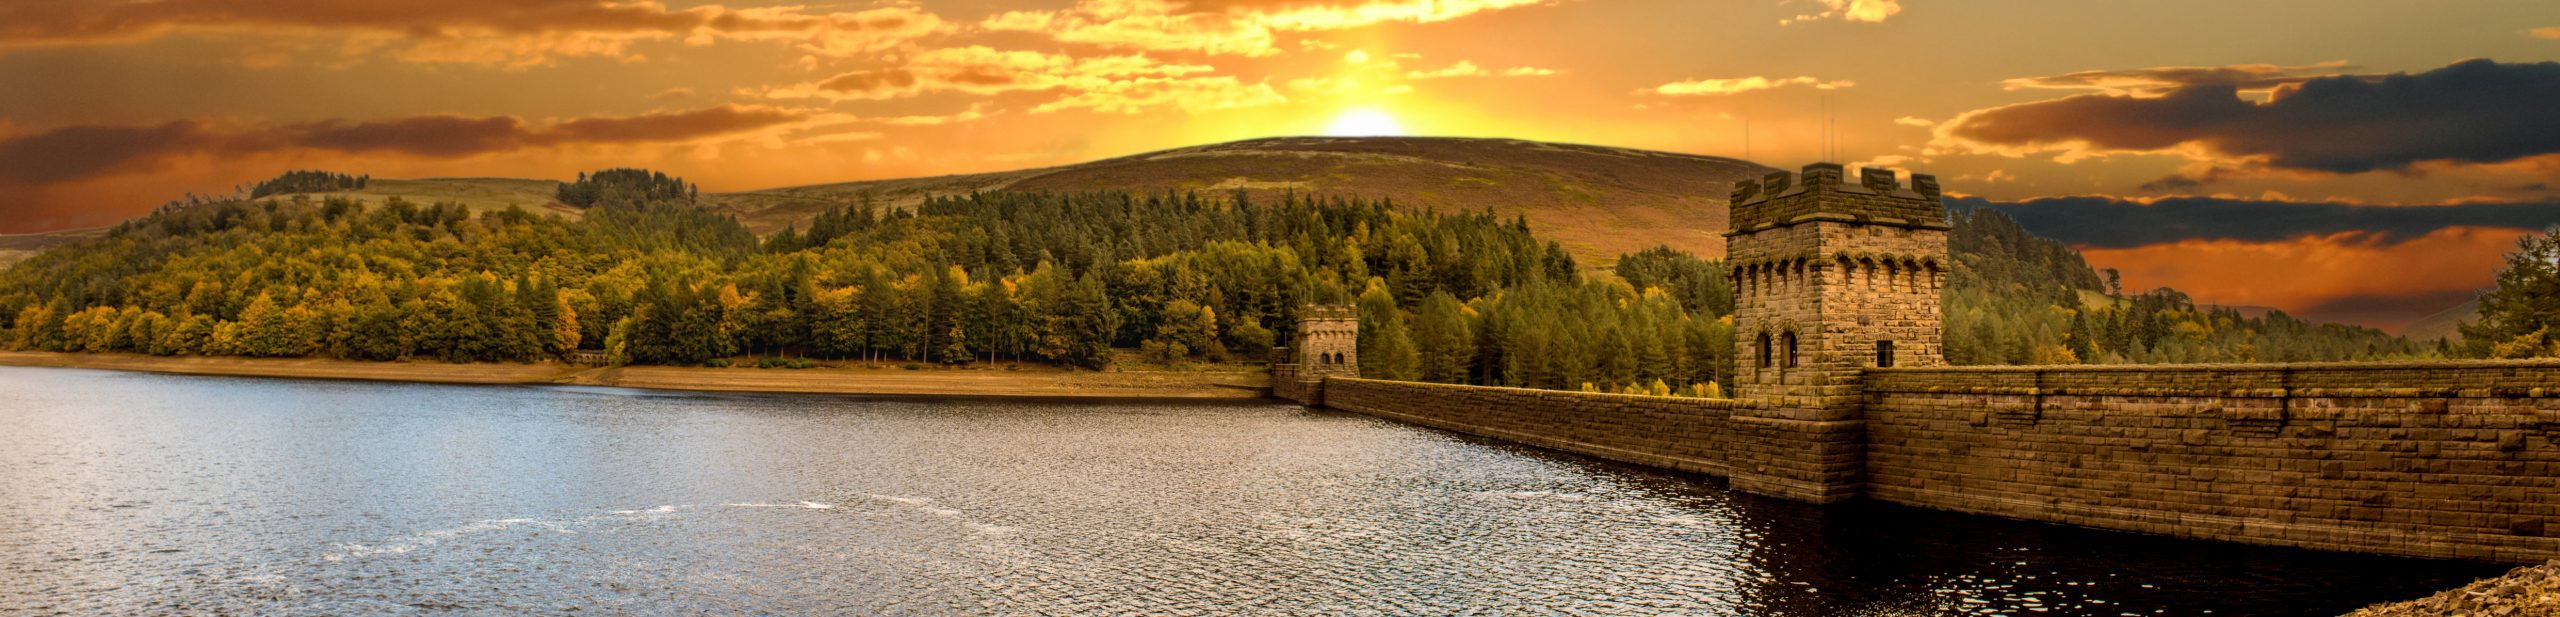 Best Places to Visit in the Midlands: erwent Dam - Peak District